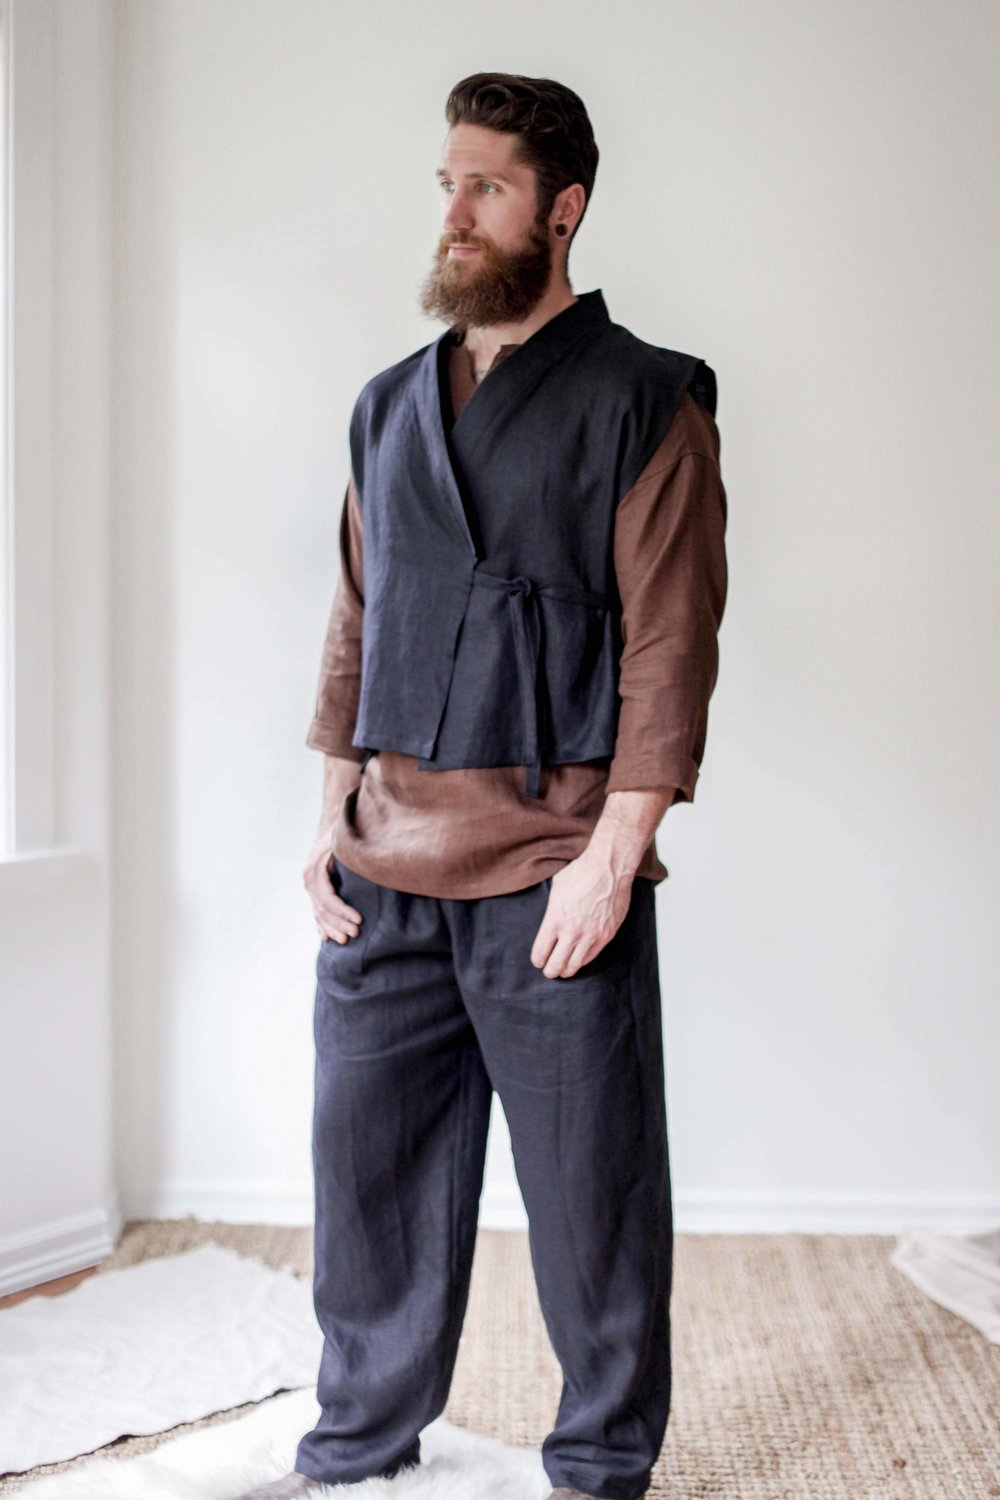 nomi-designs_mens-katara-vest_black_natural-linen-vest-for-men_front-paired-with-black-linen-pants.jpg